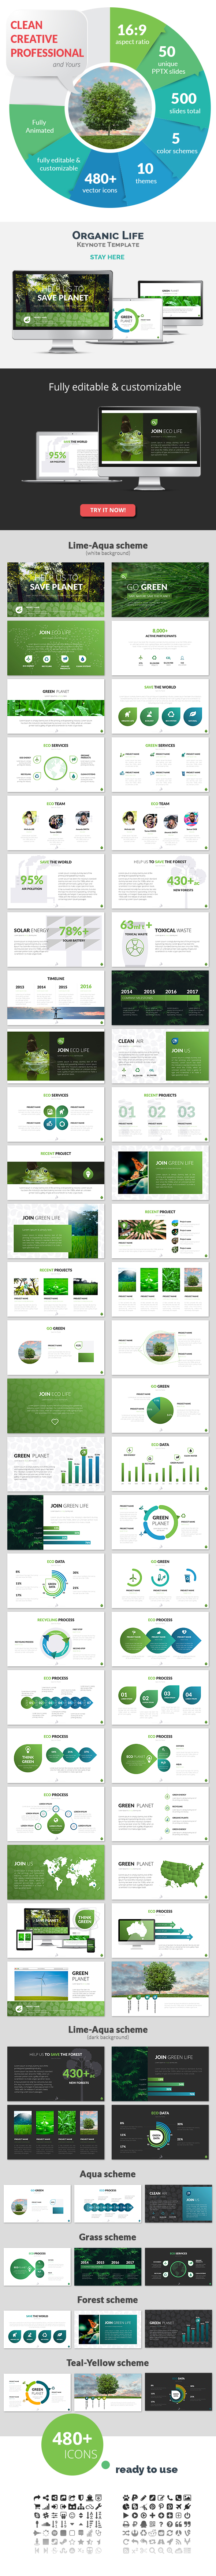 GraphicRiver Organic Life Keynote Presentation Template 20940845